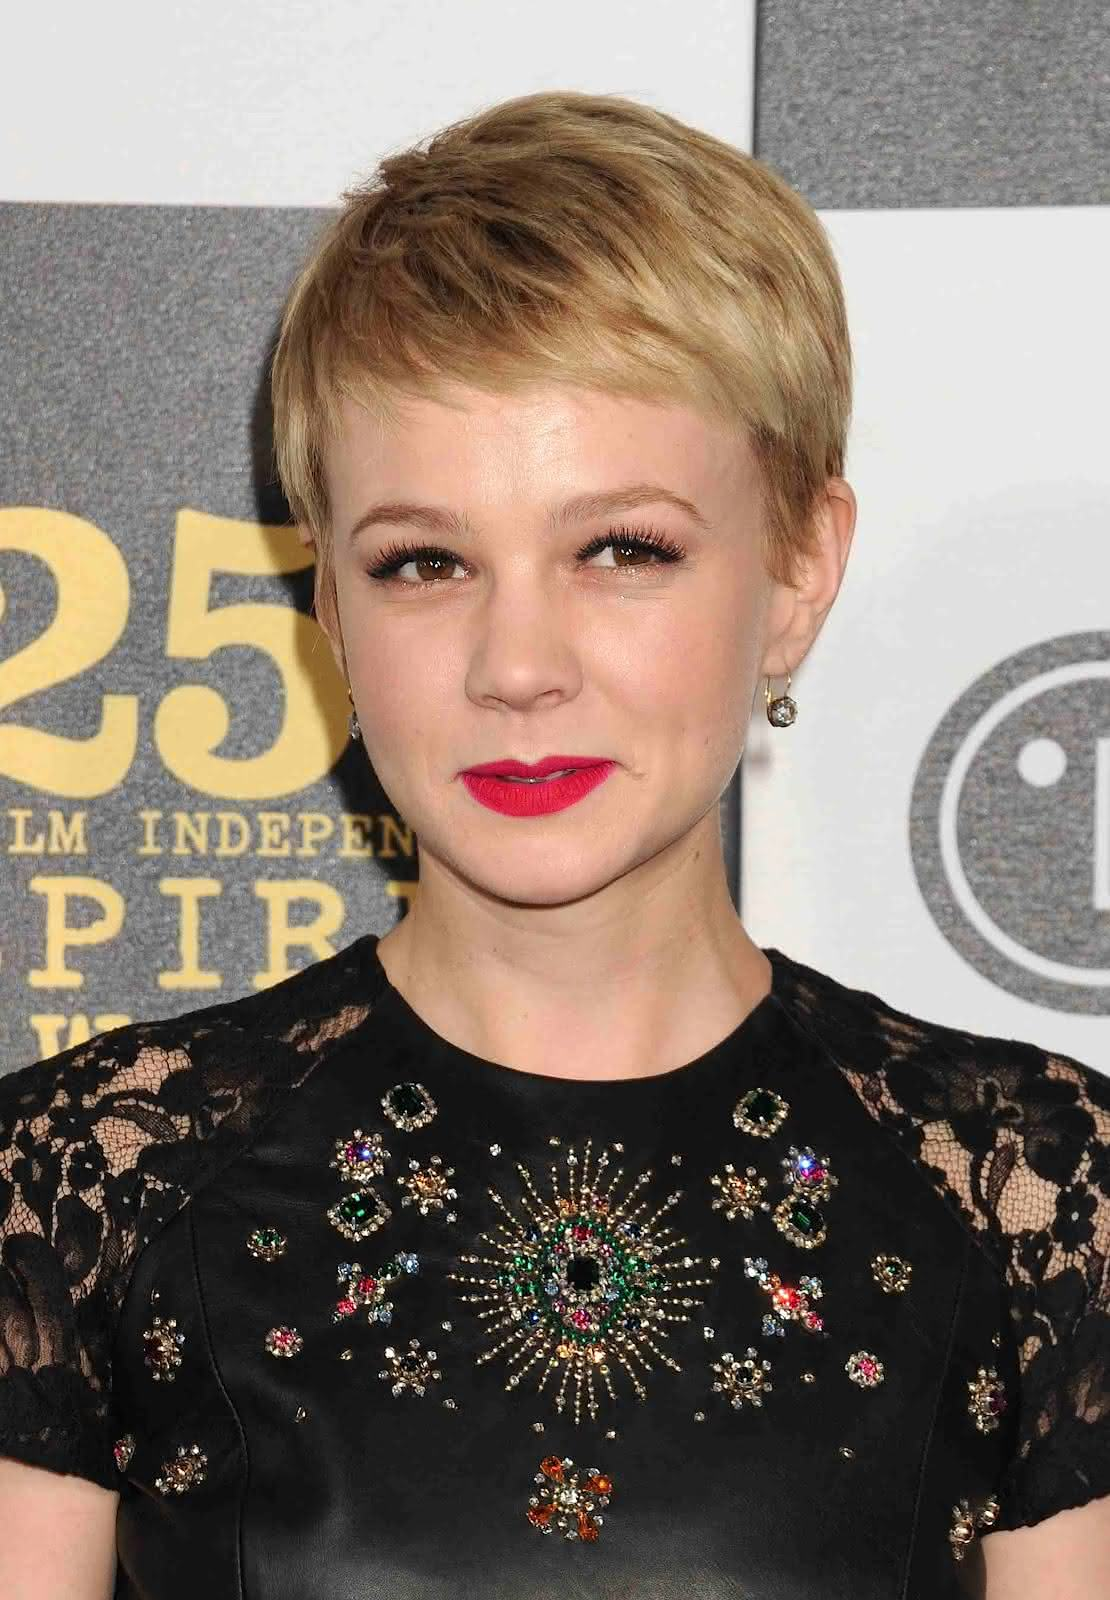 carey-mulligan-new-hairstyle-pixie-actress-oscar-pictures-brothers-10